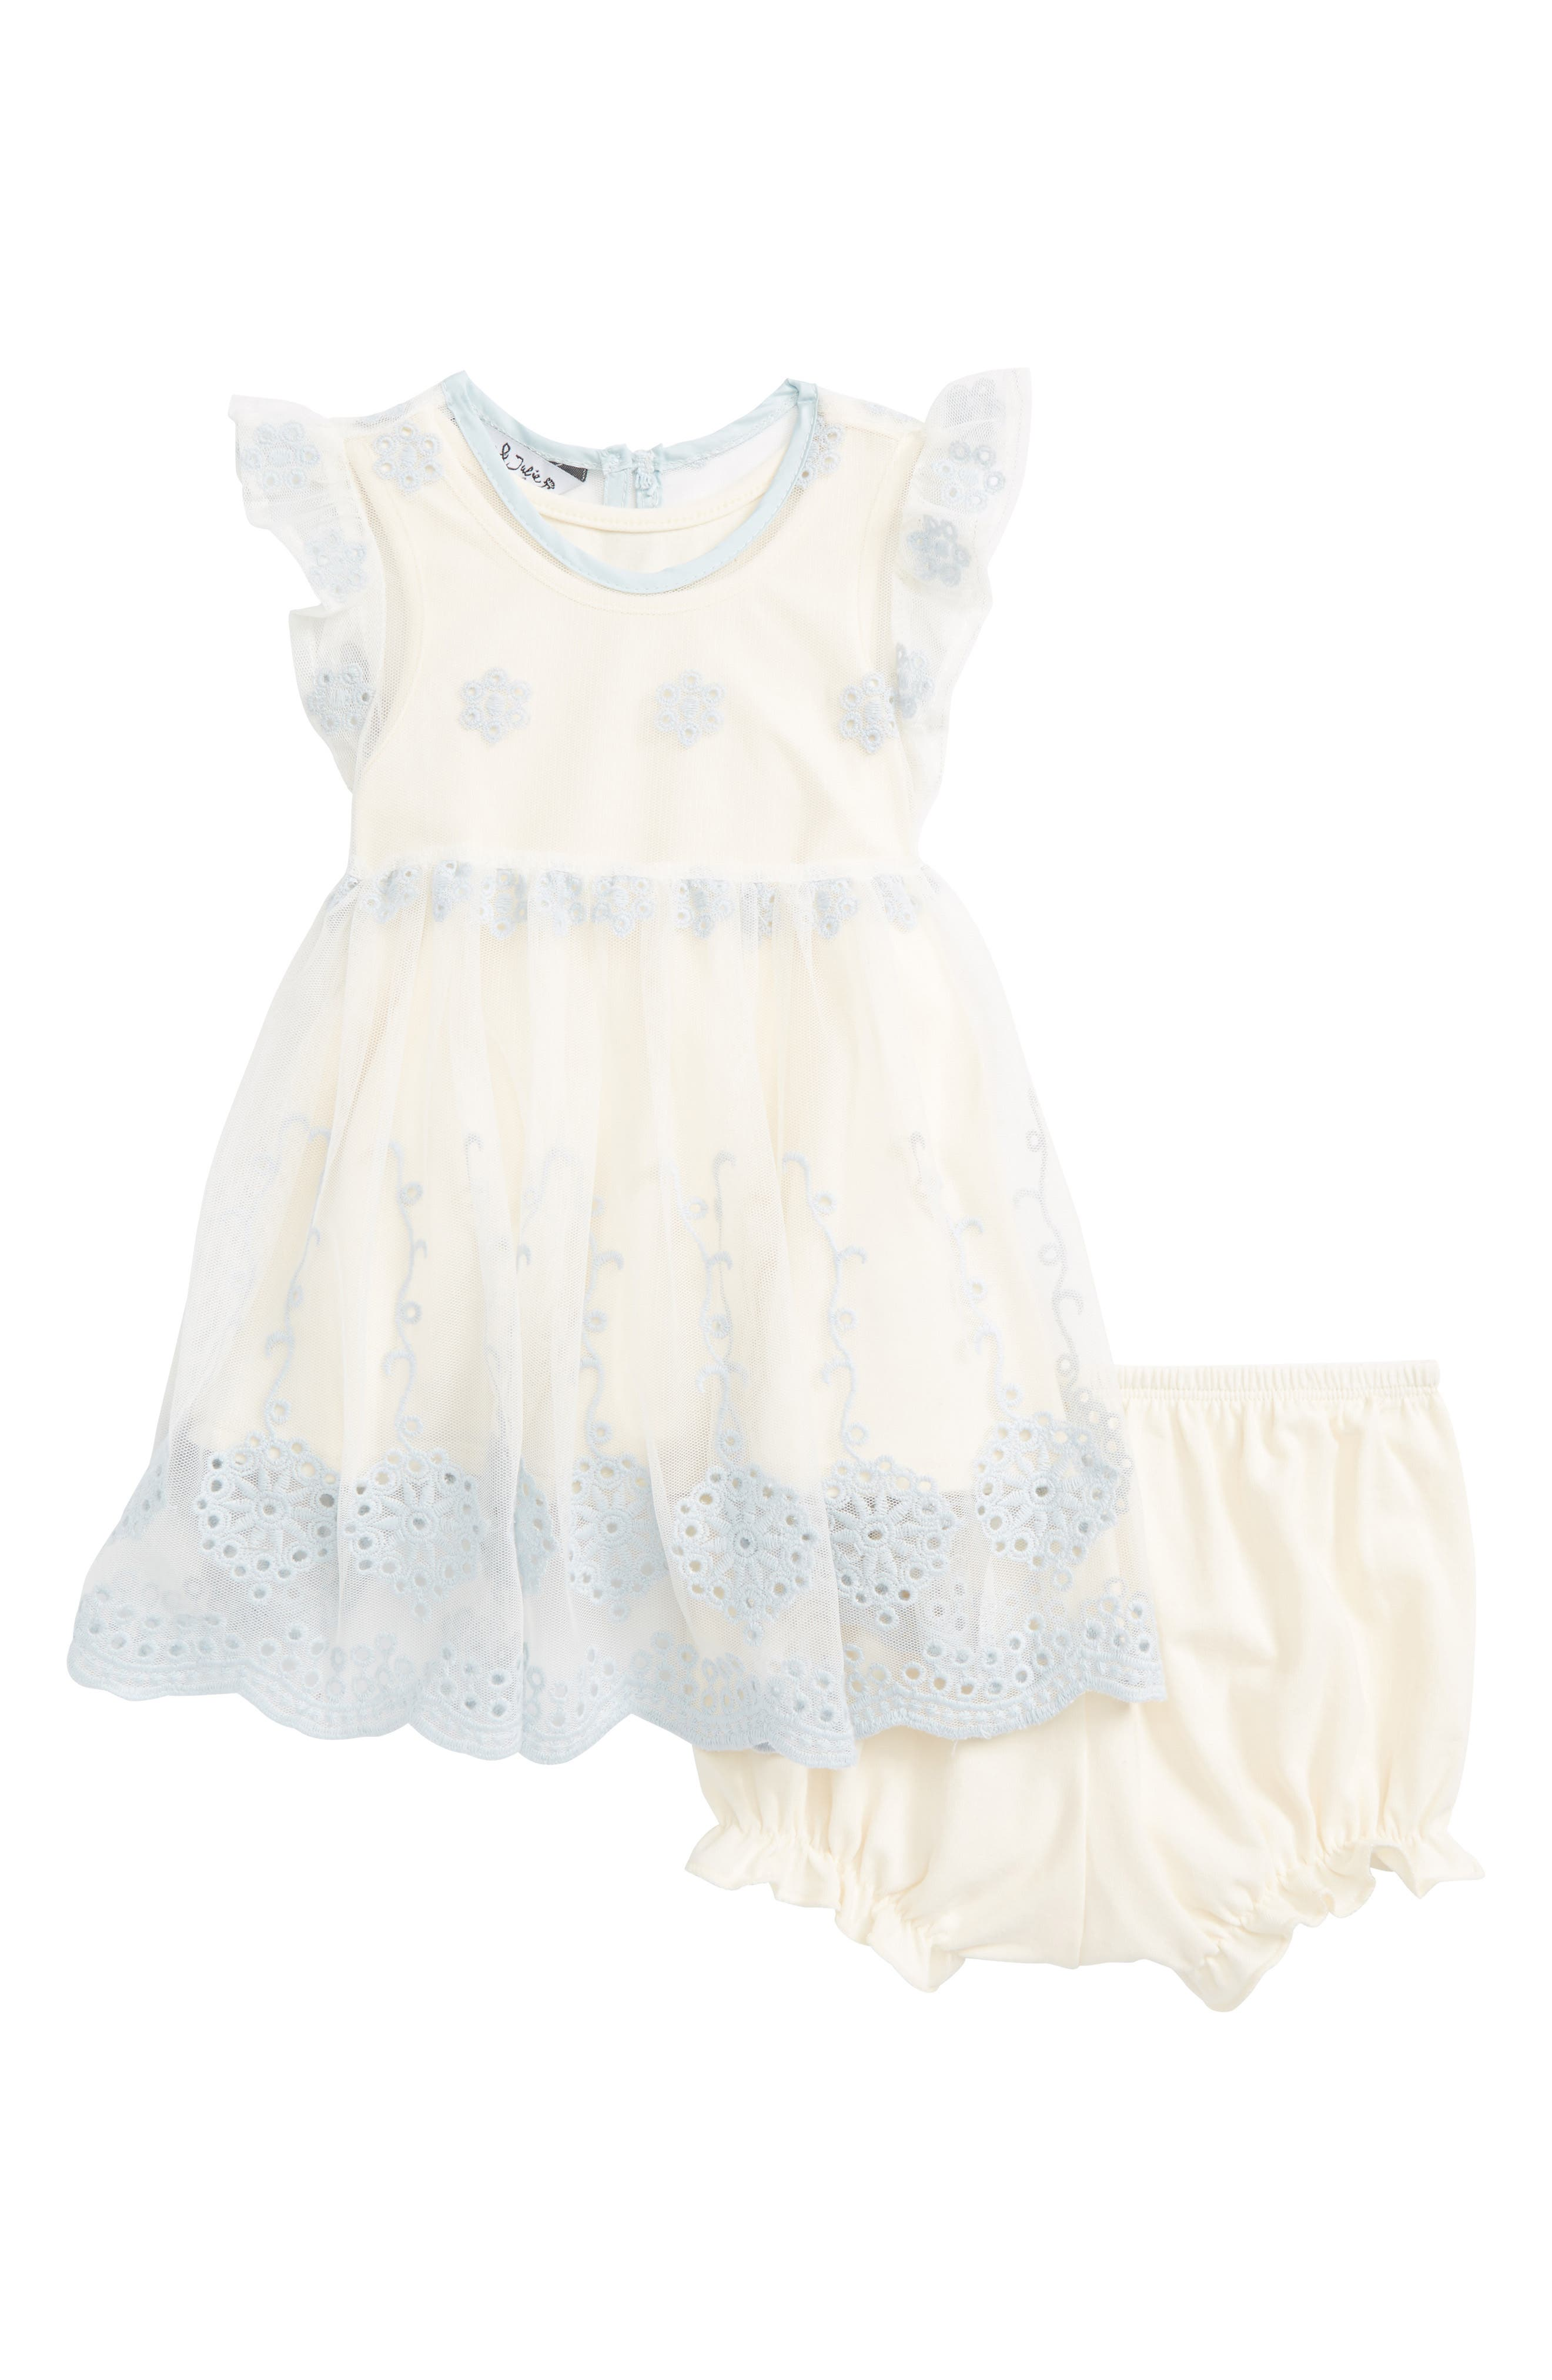 Embroidered Party Dress,                             Main thumbnail 1, color,                             Ivory/ Blue